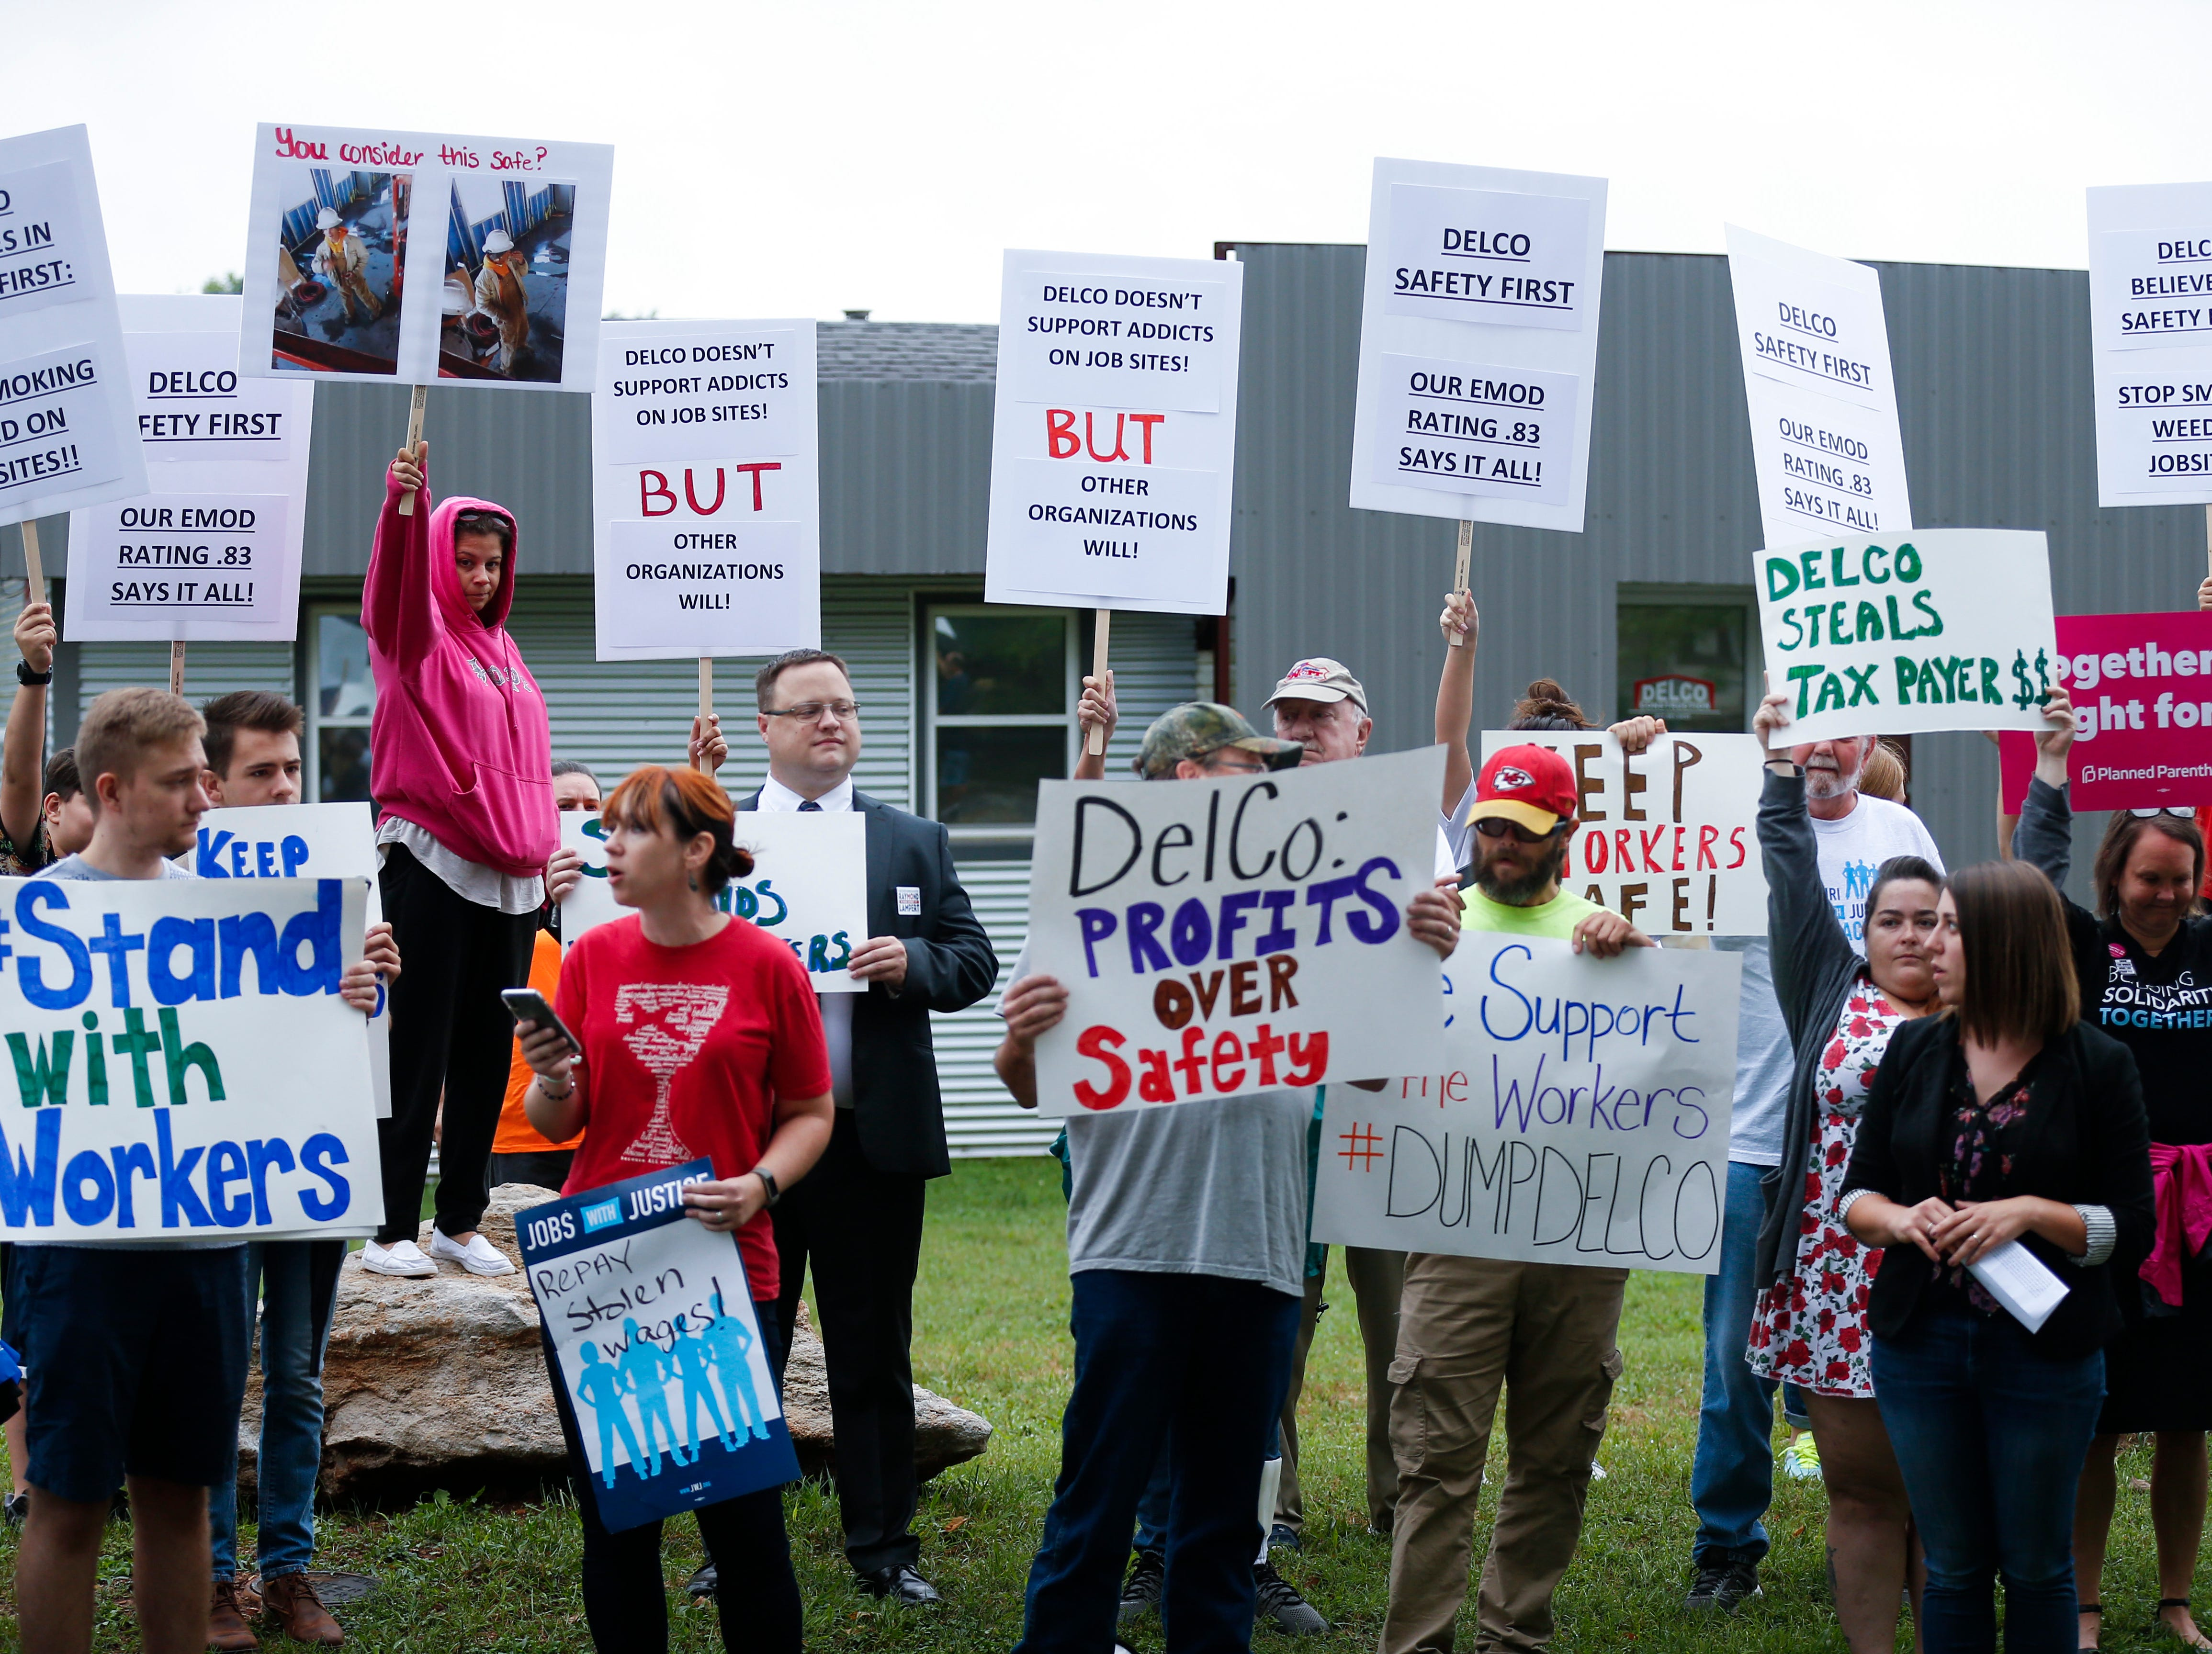 Protestors and counter-protesters behind them, stand along West Farm Road 146 outside DelCo Construction on Tuesday, Aug. 14, 2018. Protestors claimed that DelCo and its owner, Jeff Delmont, subject workers to unsafe conditions, low wages, and inadequate training while counter-protestors pushed back against the allegations.